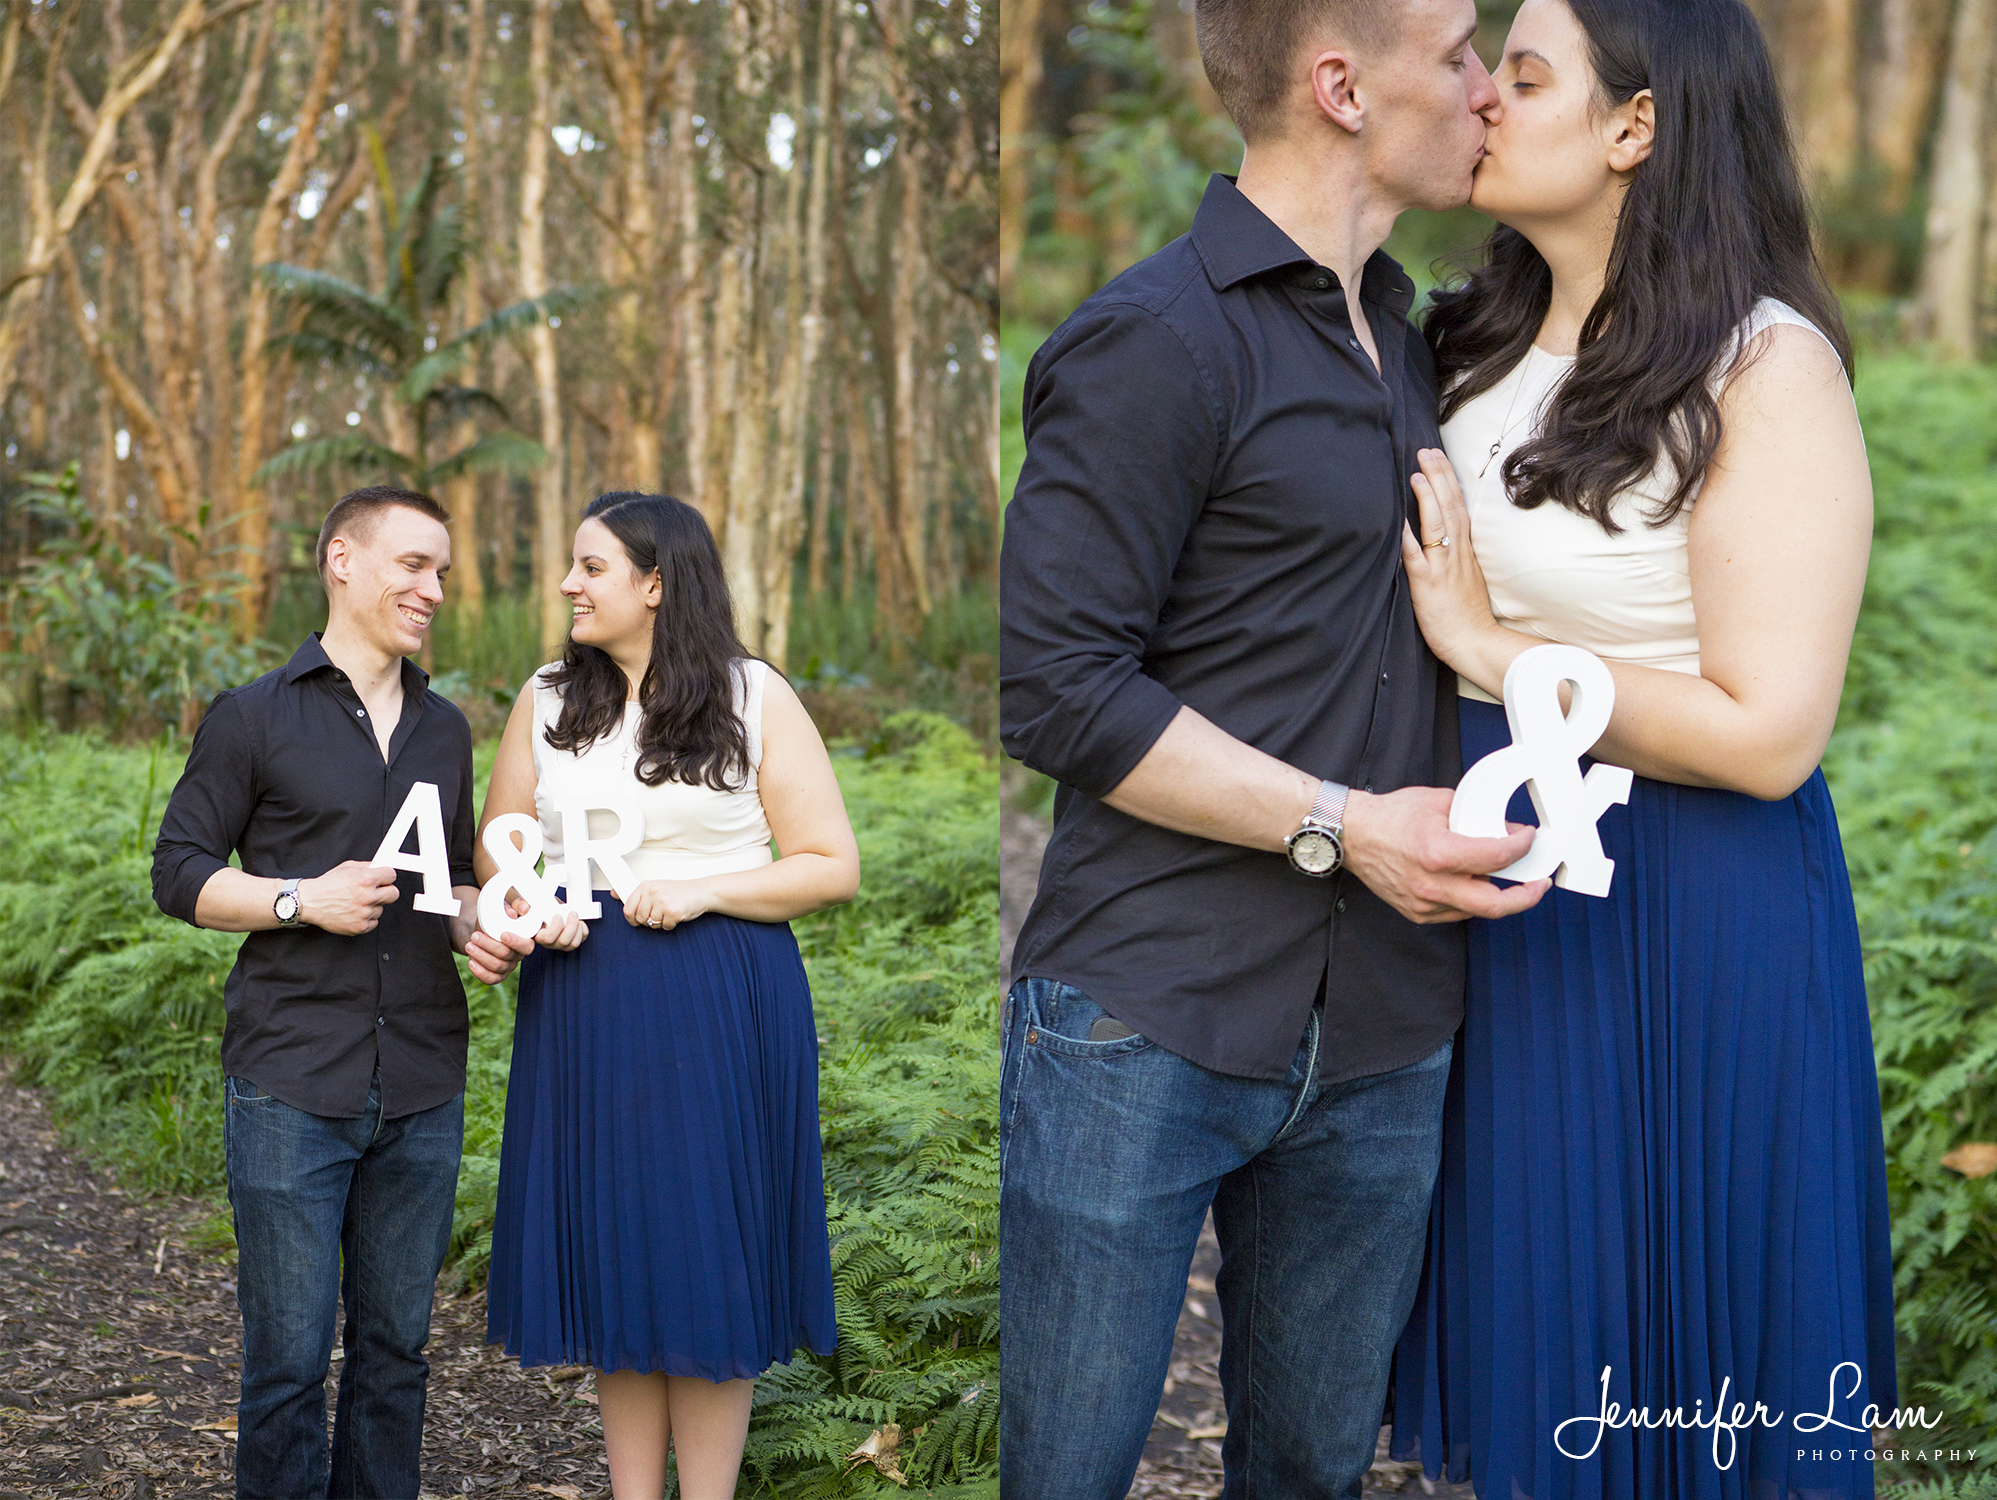 Engagement Session - Sydney Wedding Photographer - Jennifer Lam Photography (16).jpg